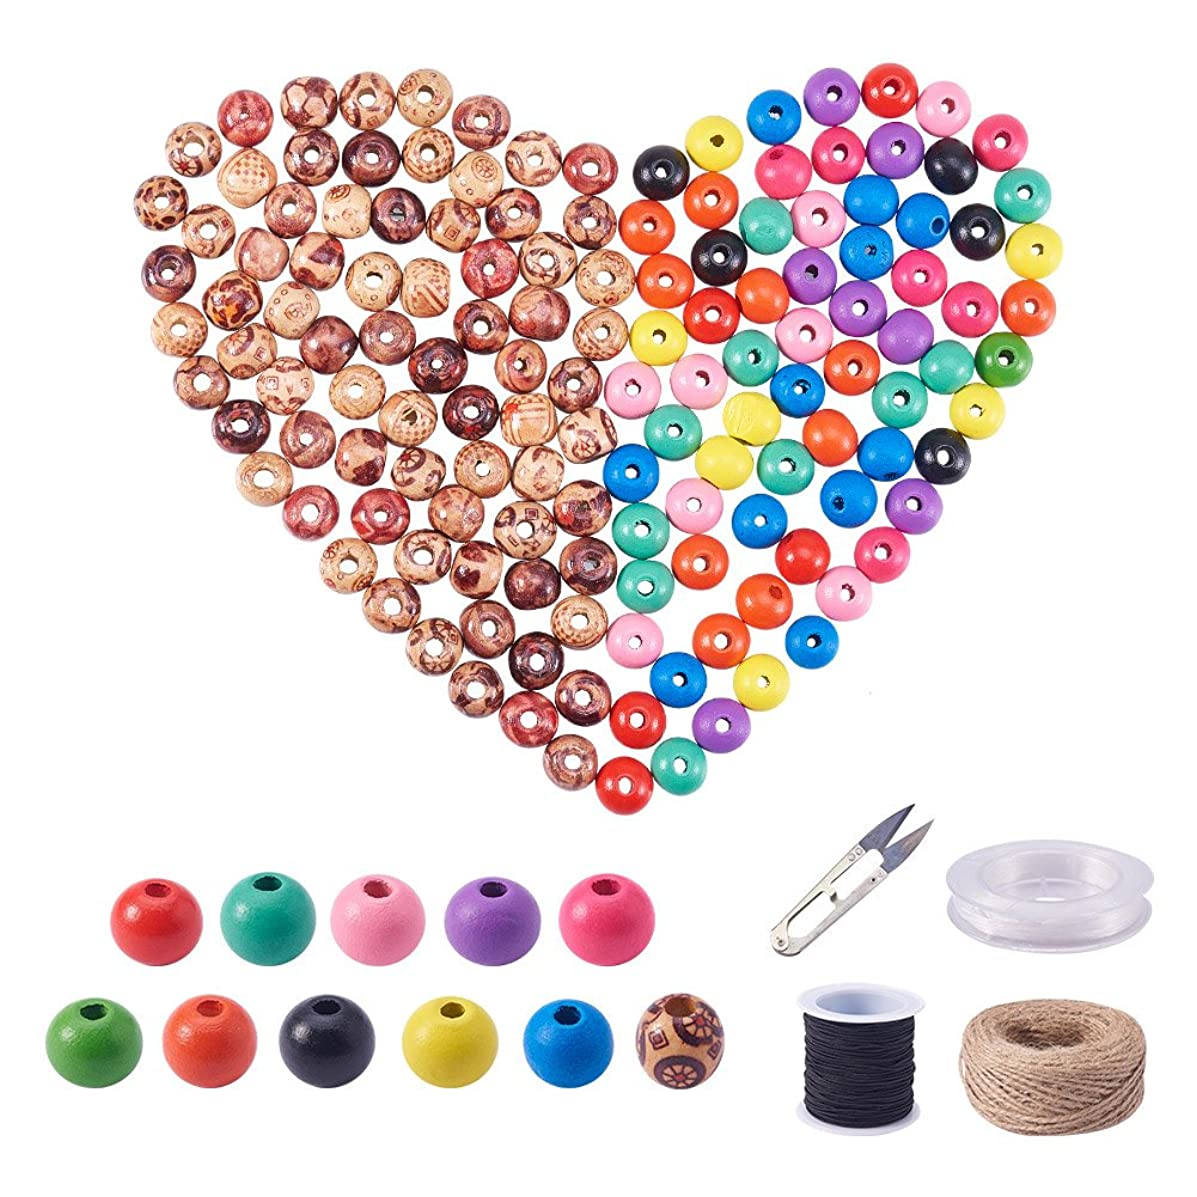 NBEADS 300pcs Assorted Color Round Wooden Beads Wood Beads 10mm 13mm for DIY Jewelry Making with Black Elastic Cord, Hemp Cord, Sharp Steel Scissors, Elastic Wire, Mixed Color, 13.5x7x3cm